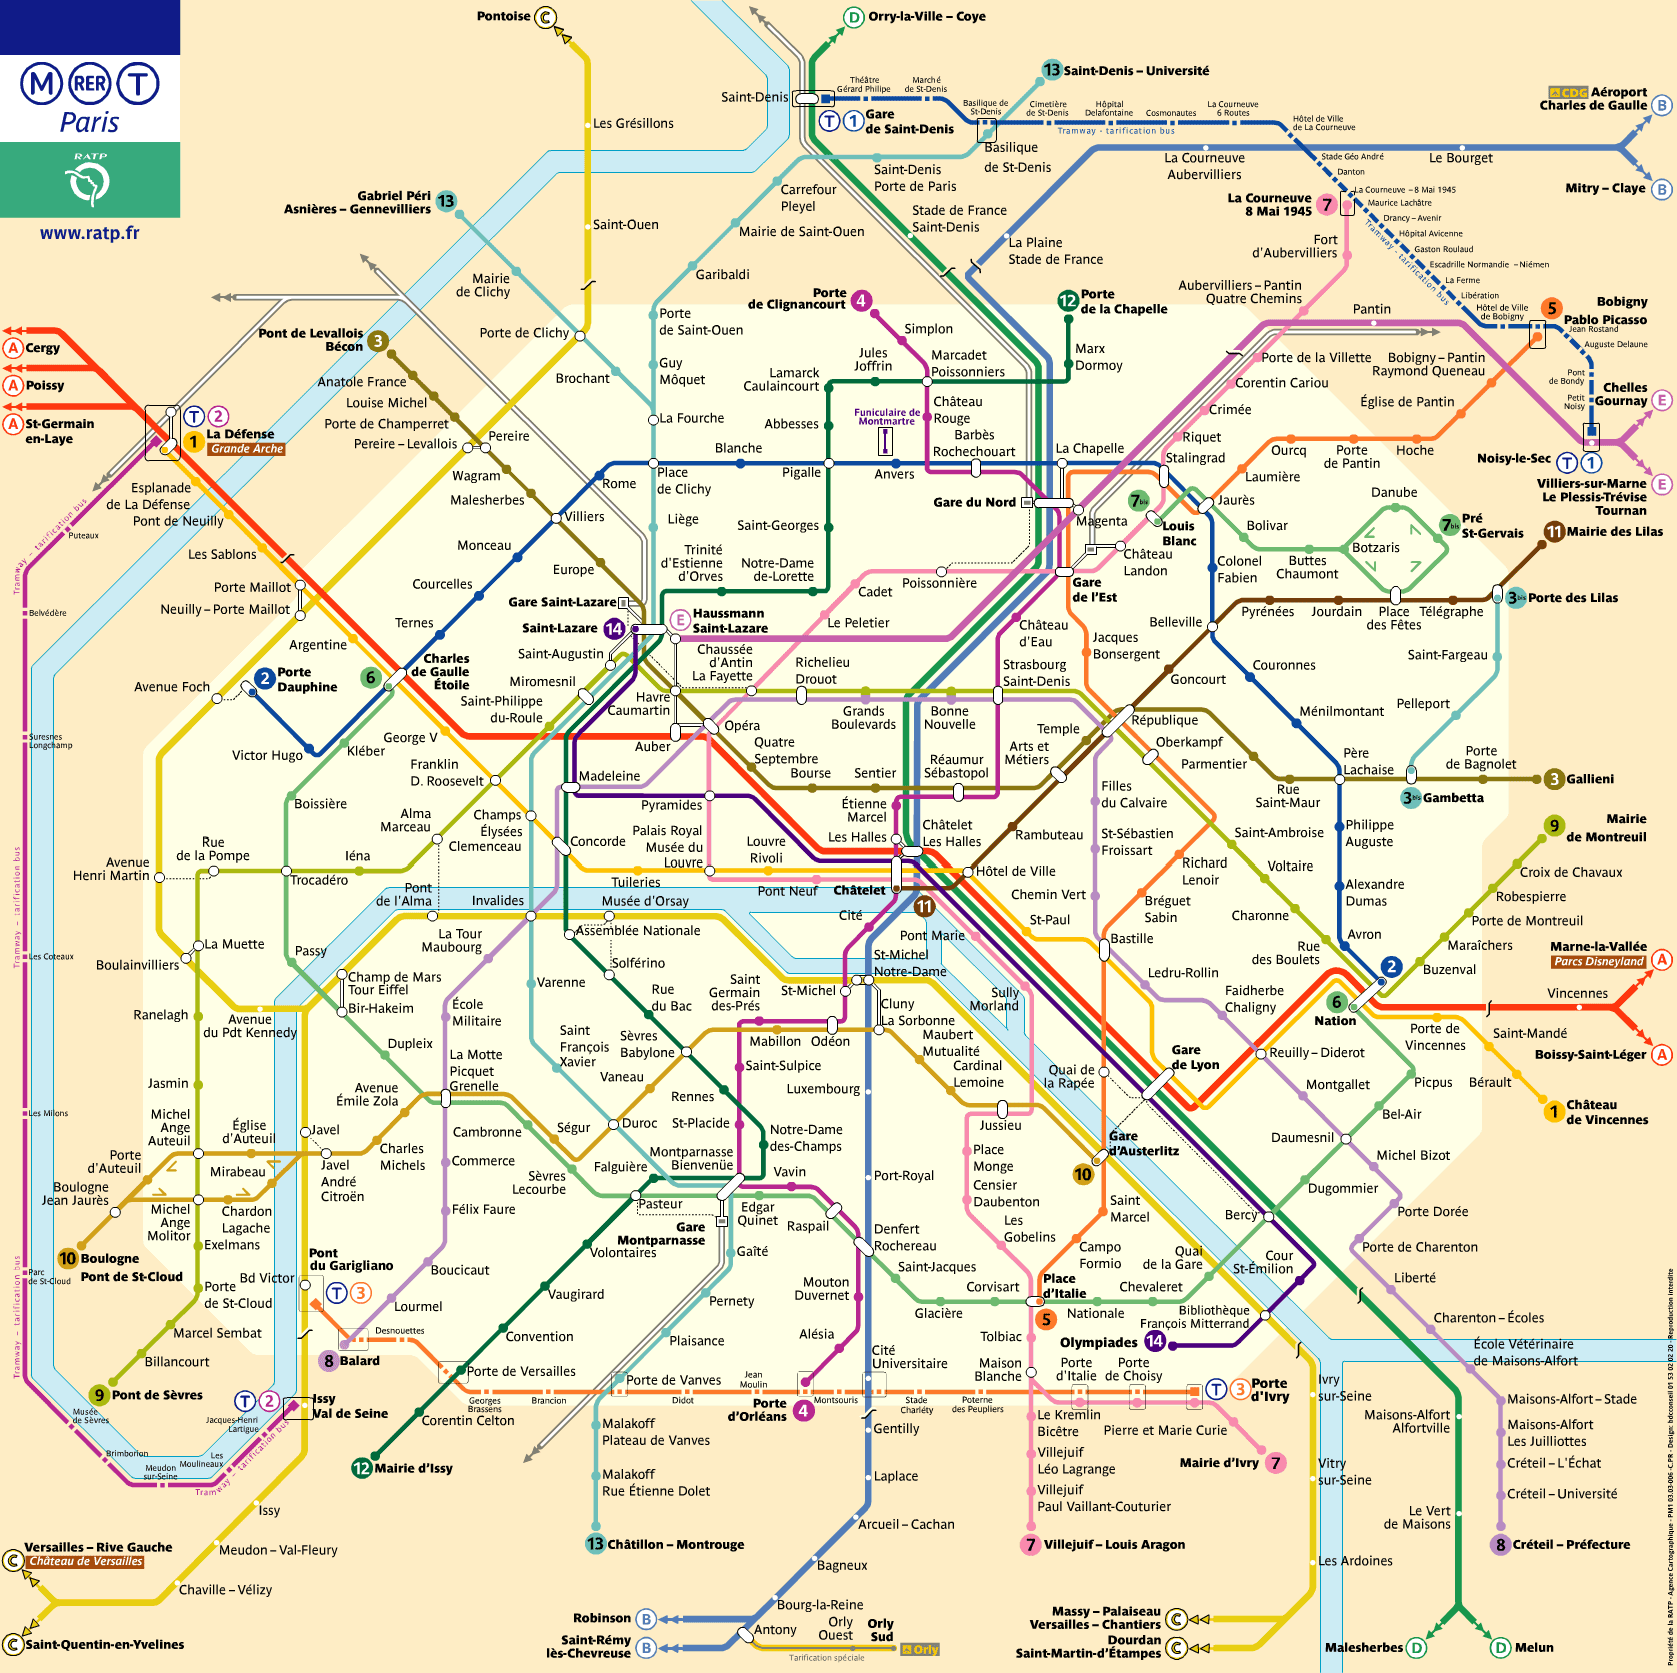 Paris Metro - The easiest and fastest way to get around Paris